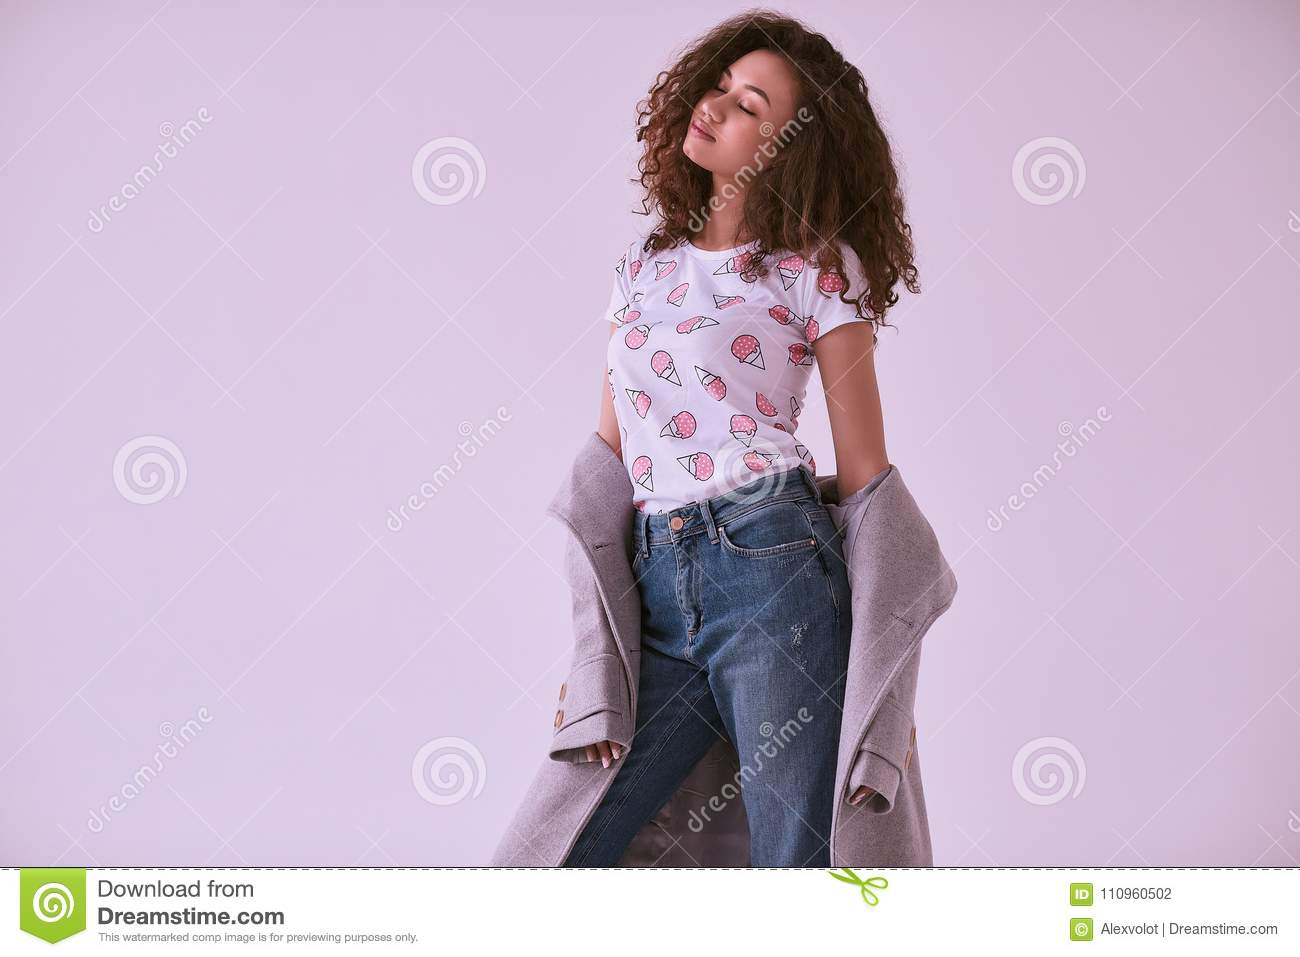 e13cf9b0e0c Gorgeous portrait of elegant black hipster woman with curly hair in coat  and jeans on white background